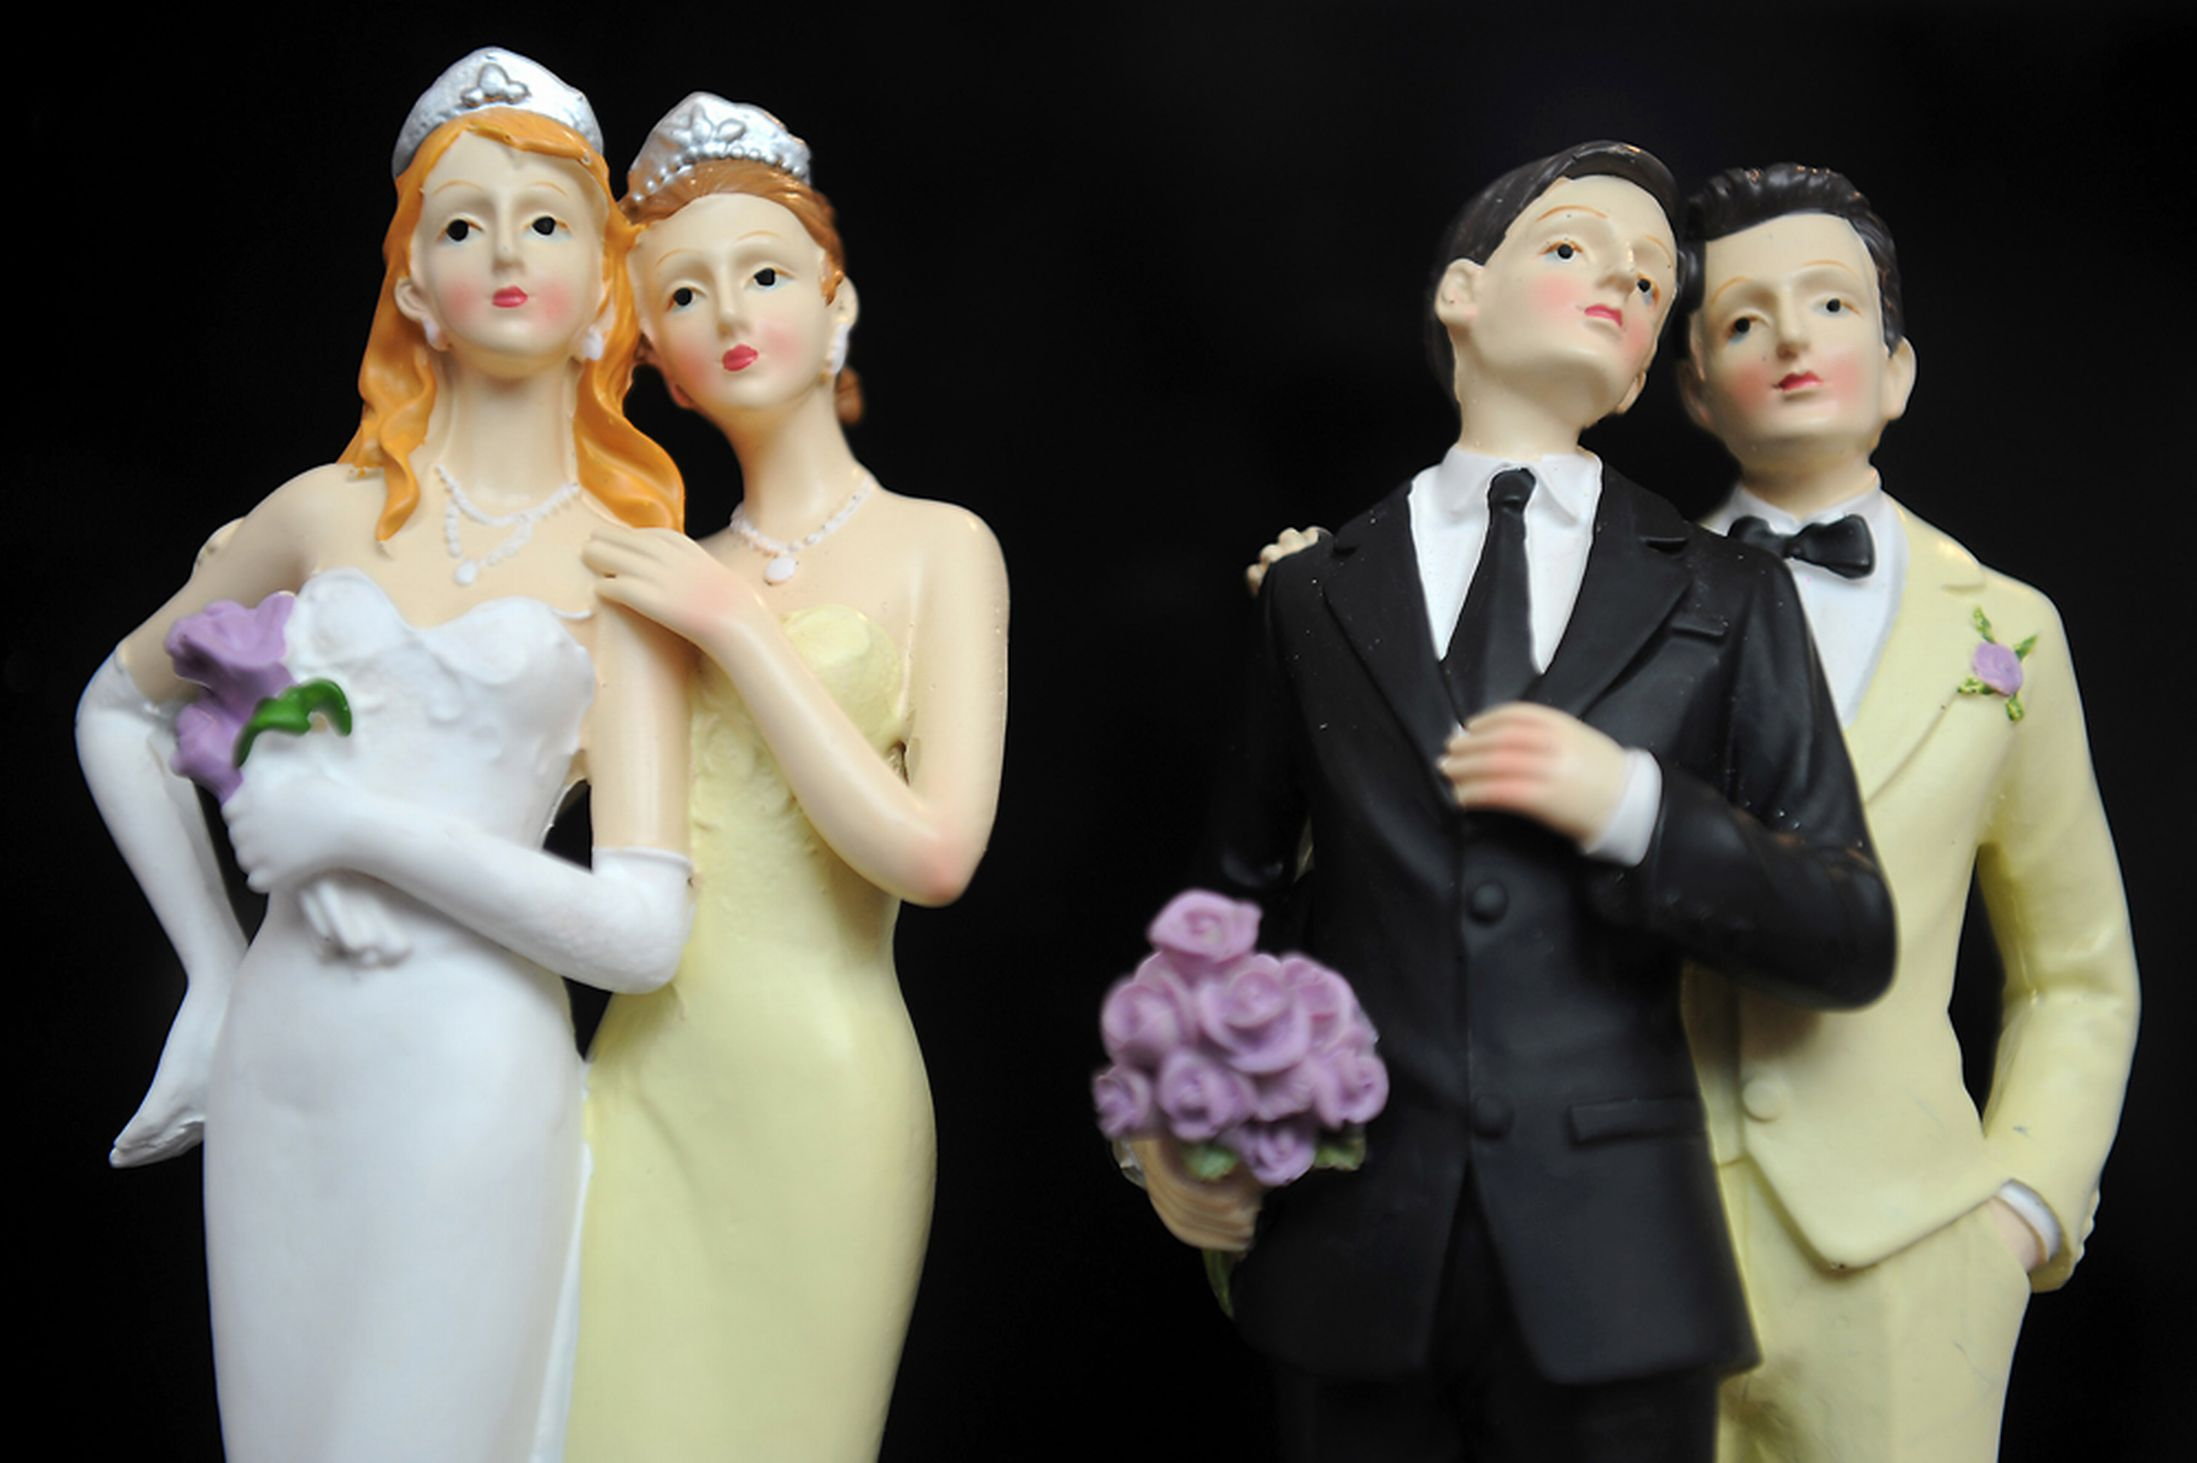 A discussion on the marriages of homosexuals